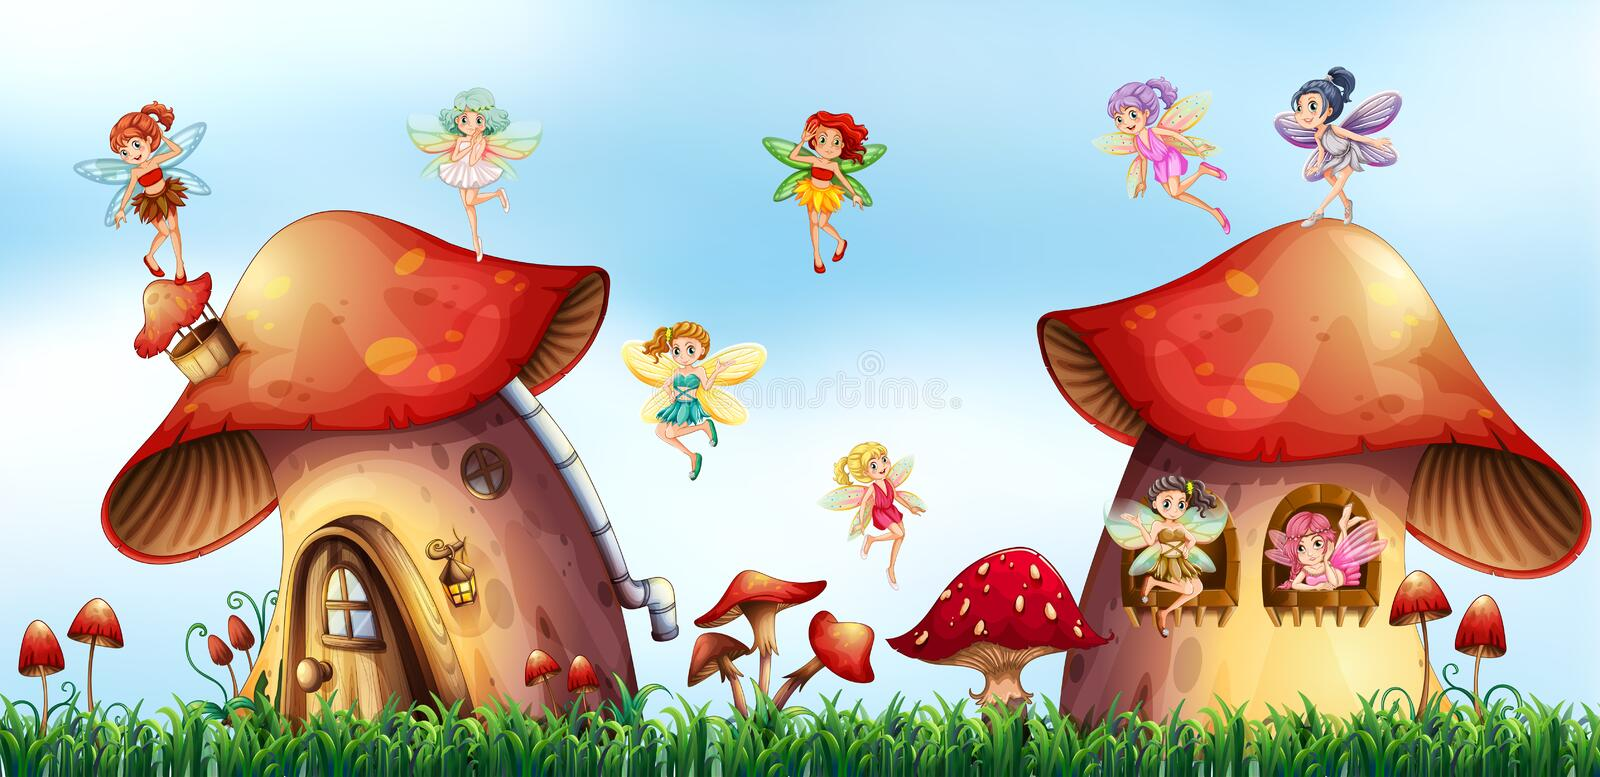 Scene with fairies flying around mushroom houses. Illustration royalty free illustration